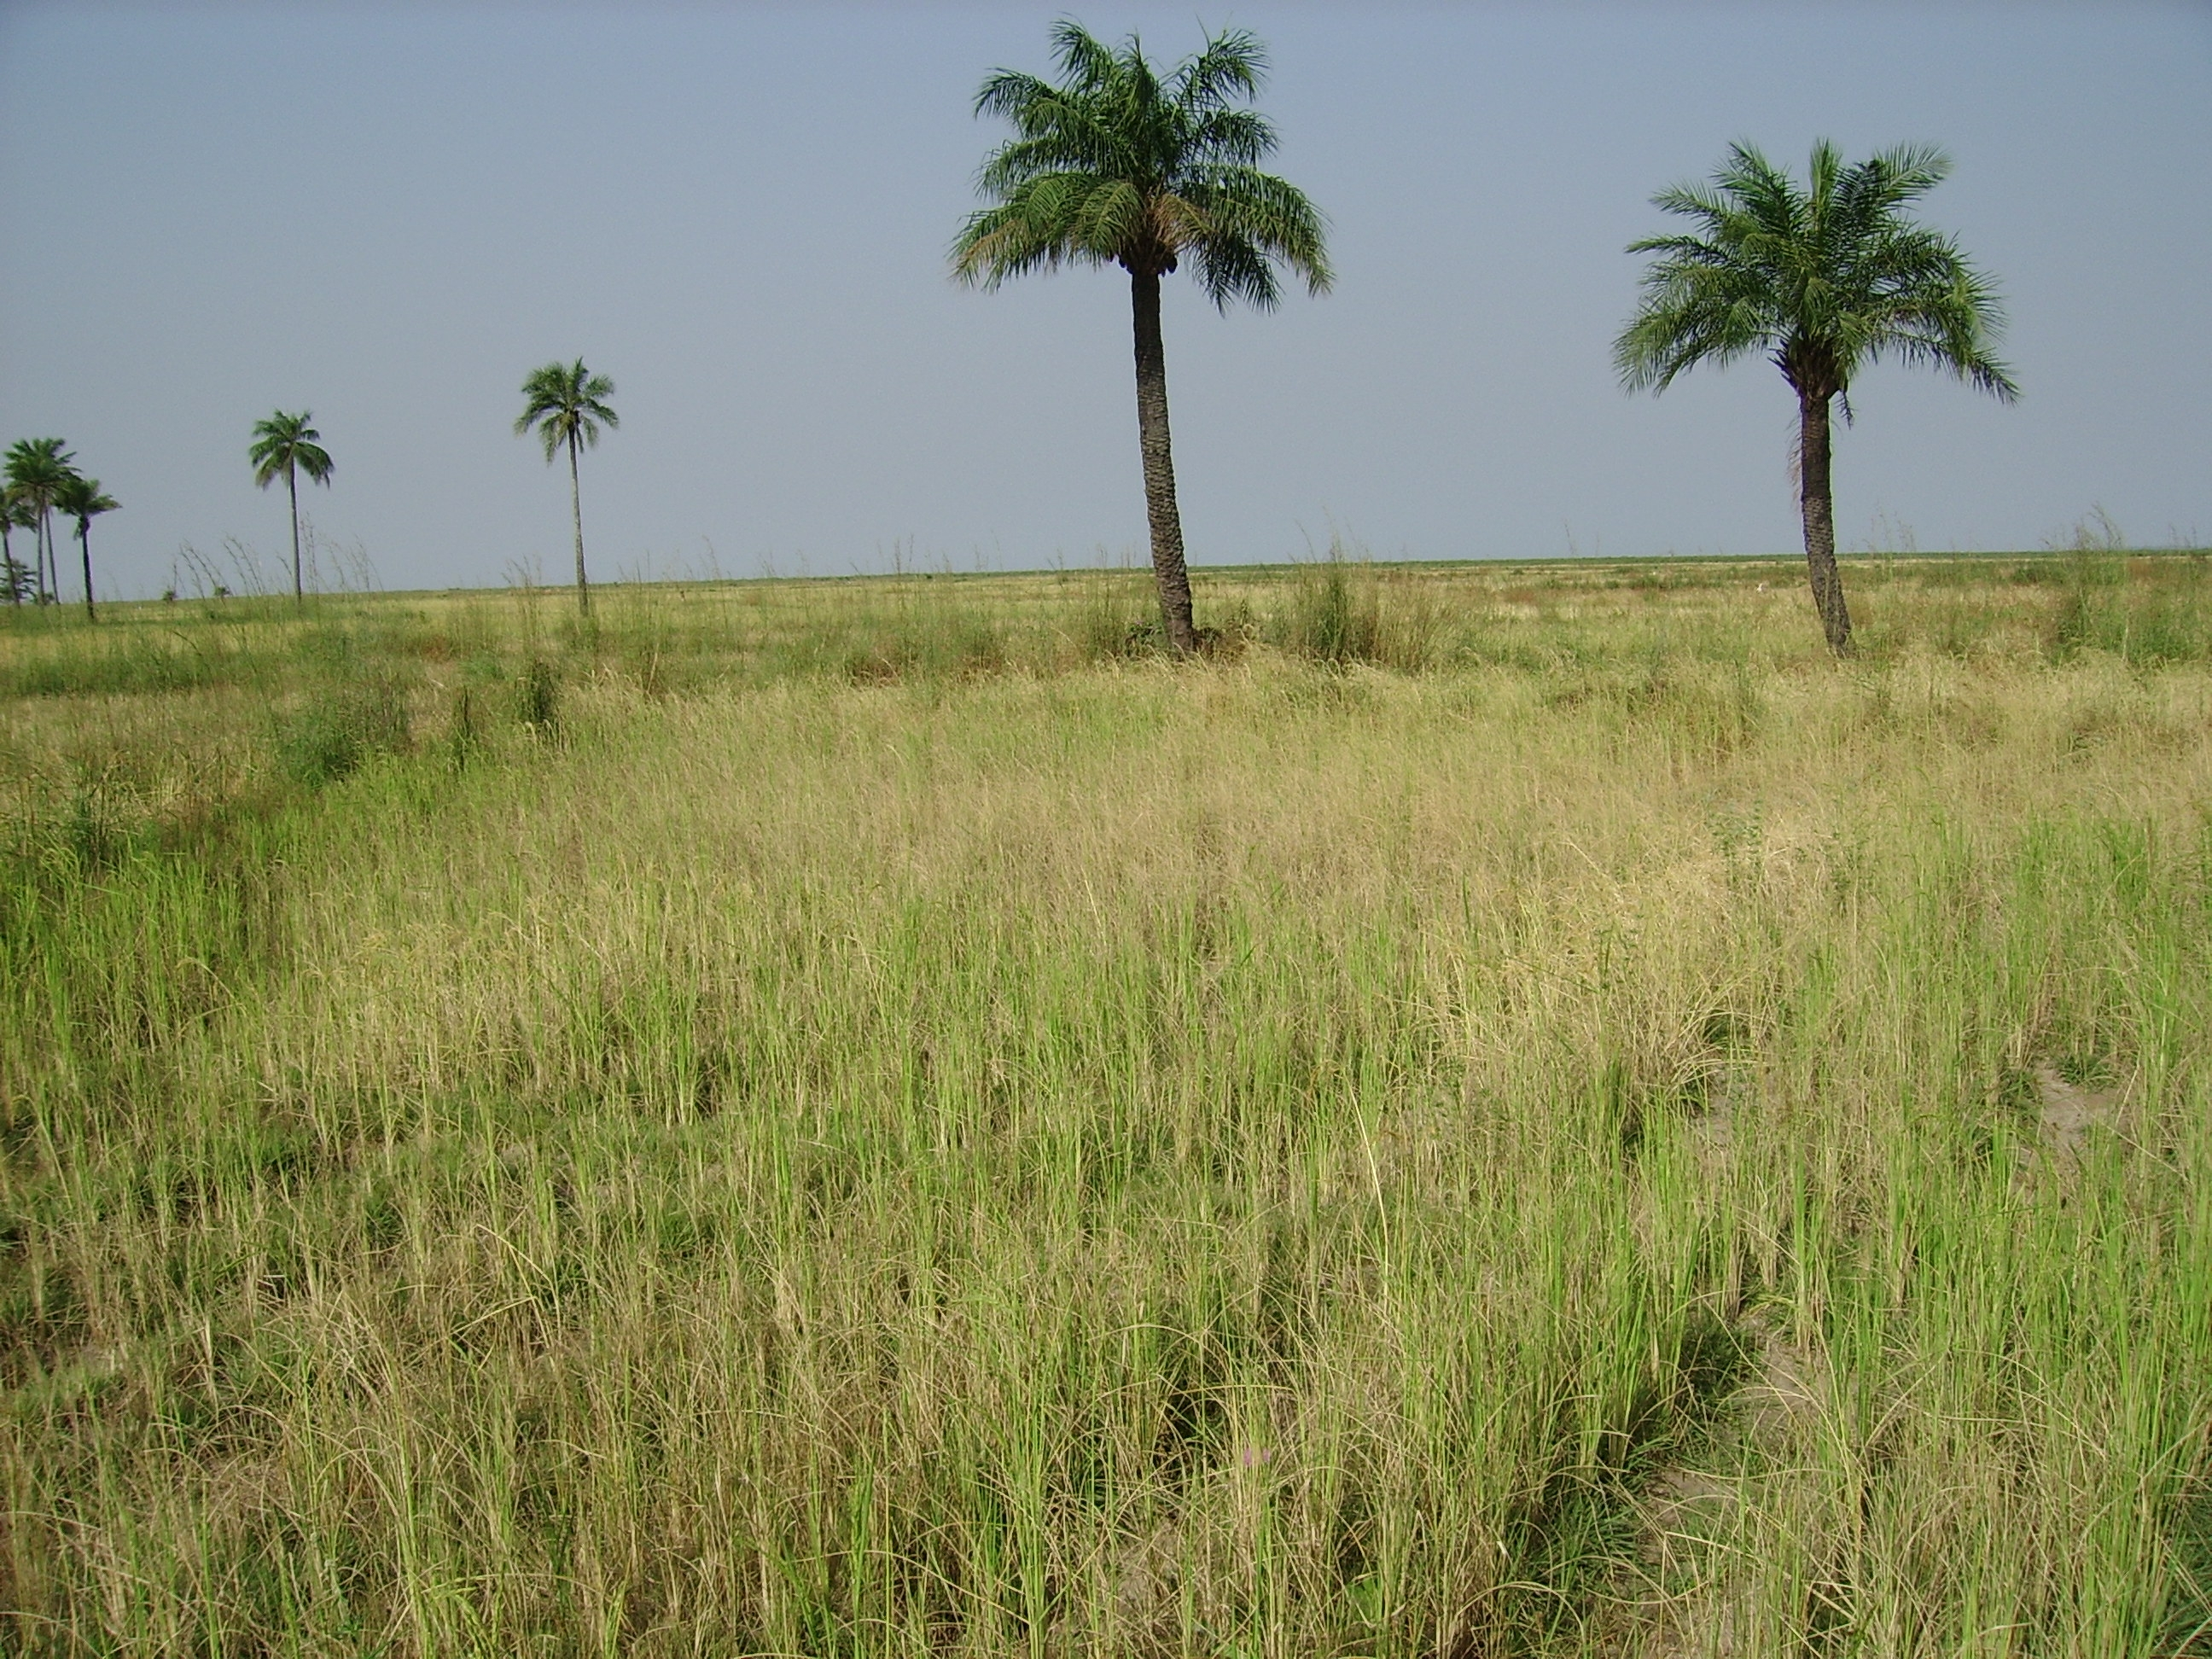 A dried-up rice field in Senegal's Casamance region.